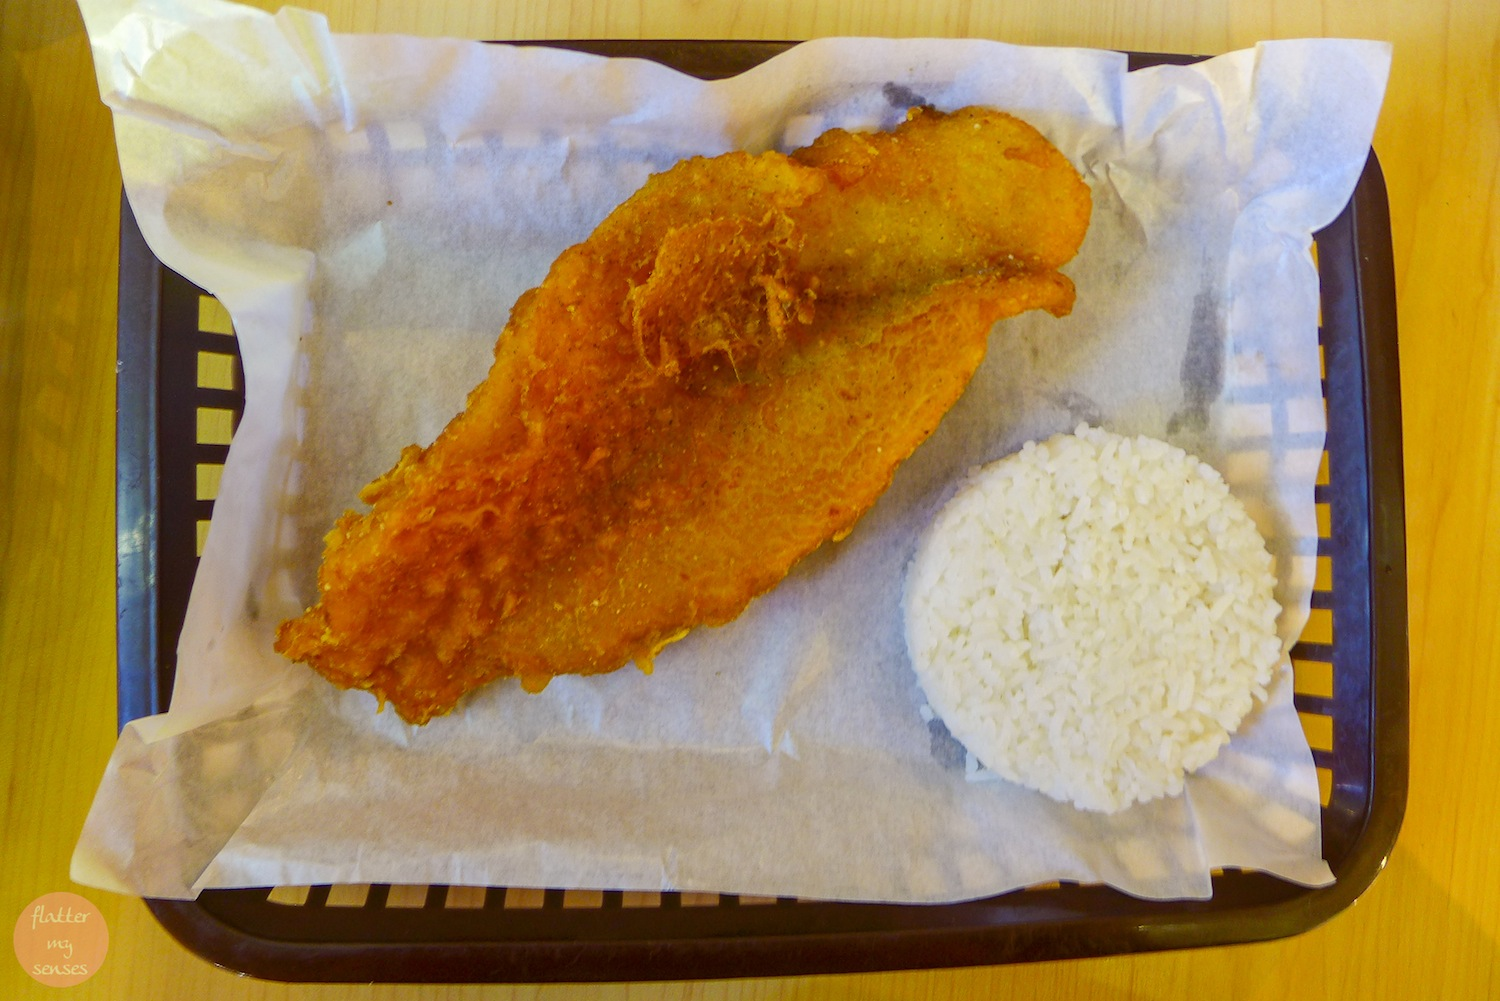 Large Crispy Fish (Php 110) + Php 35 for the rice and drink